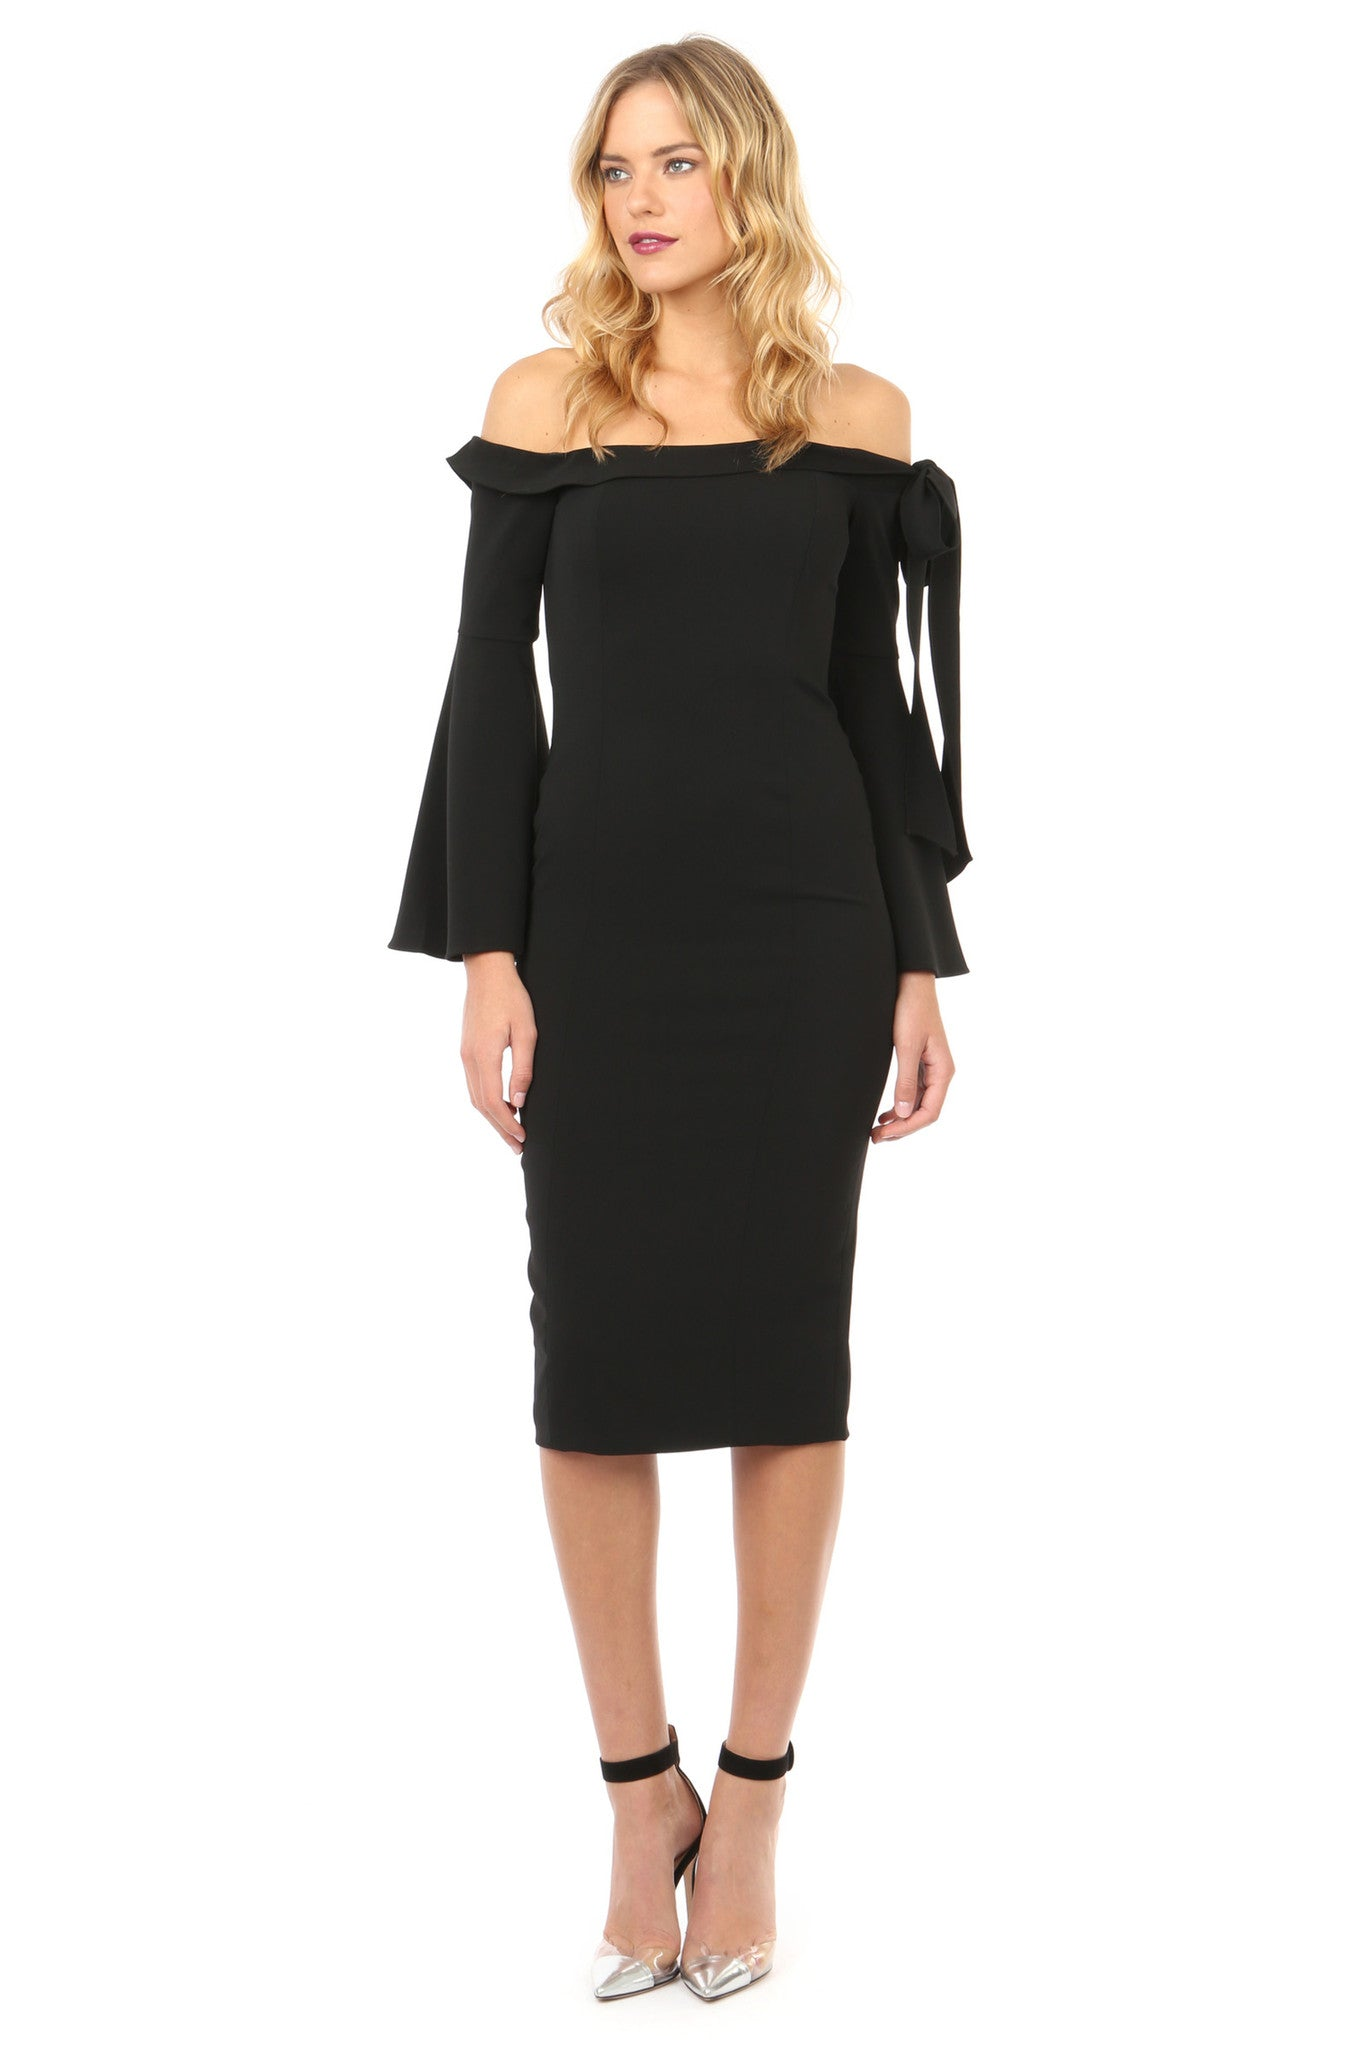 Jay Godfrey Black Off-the-Shoulder Bell Sleeve Dress - Front View